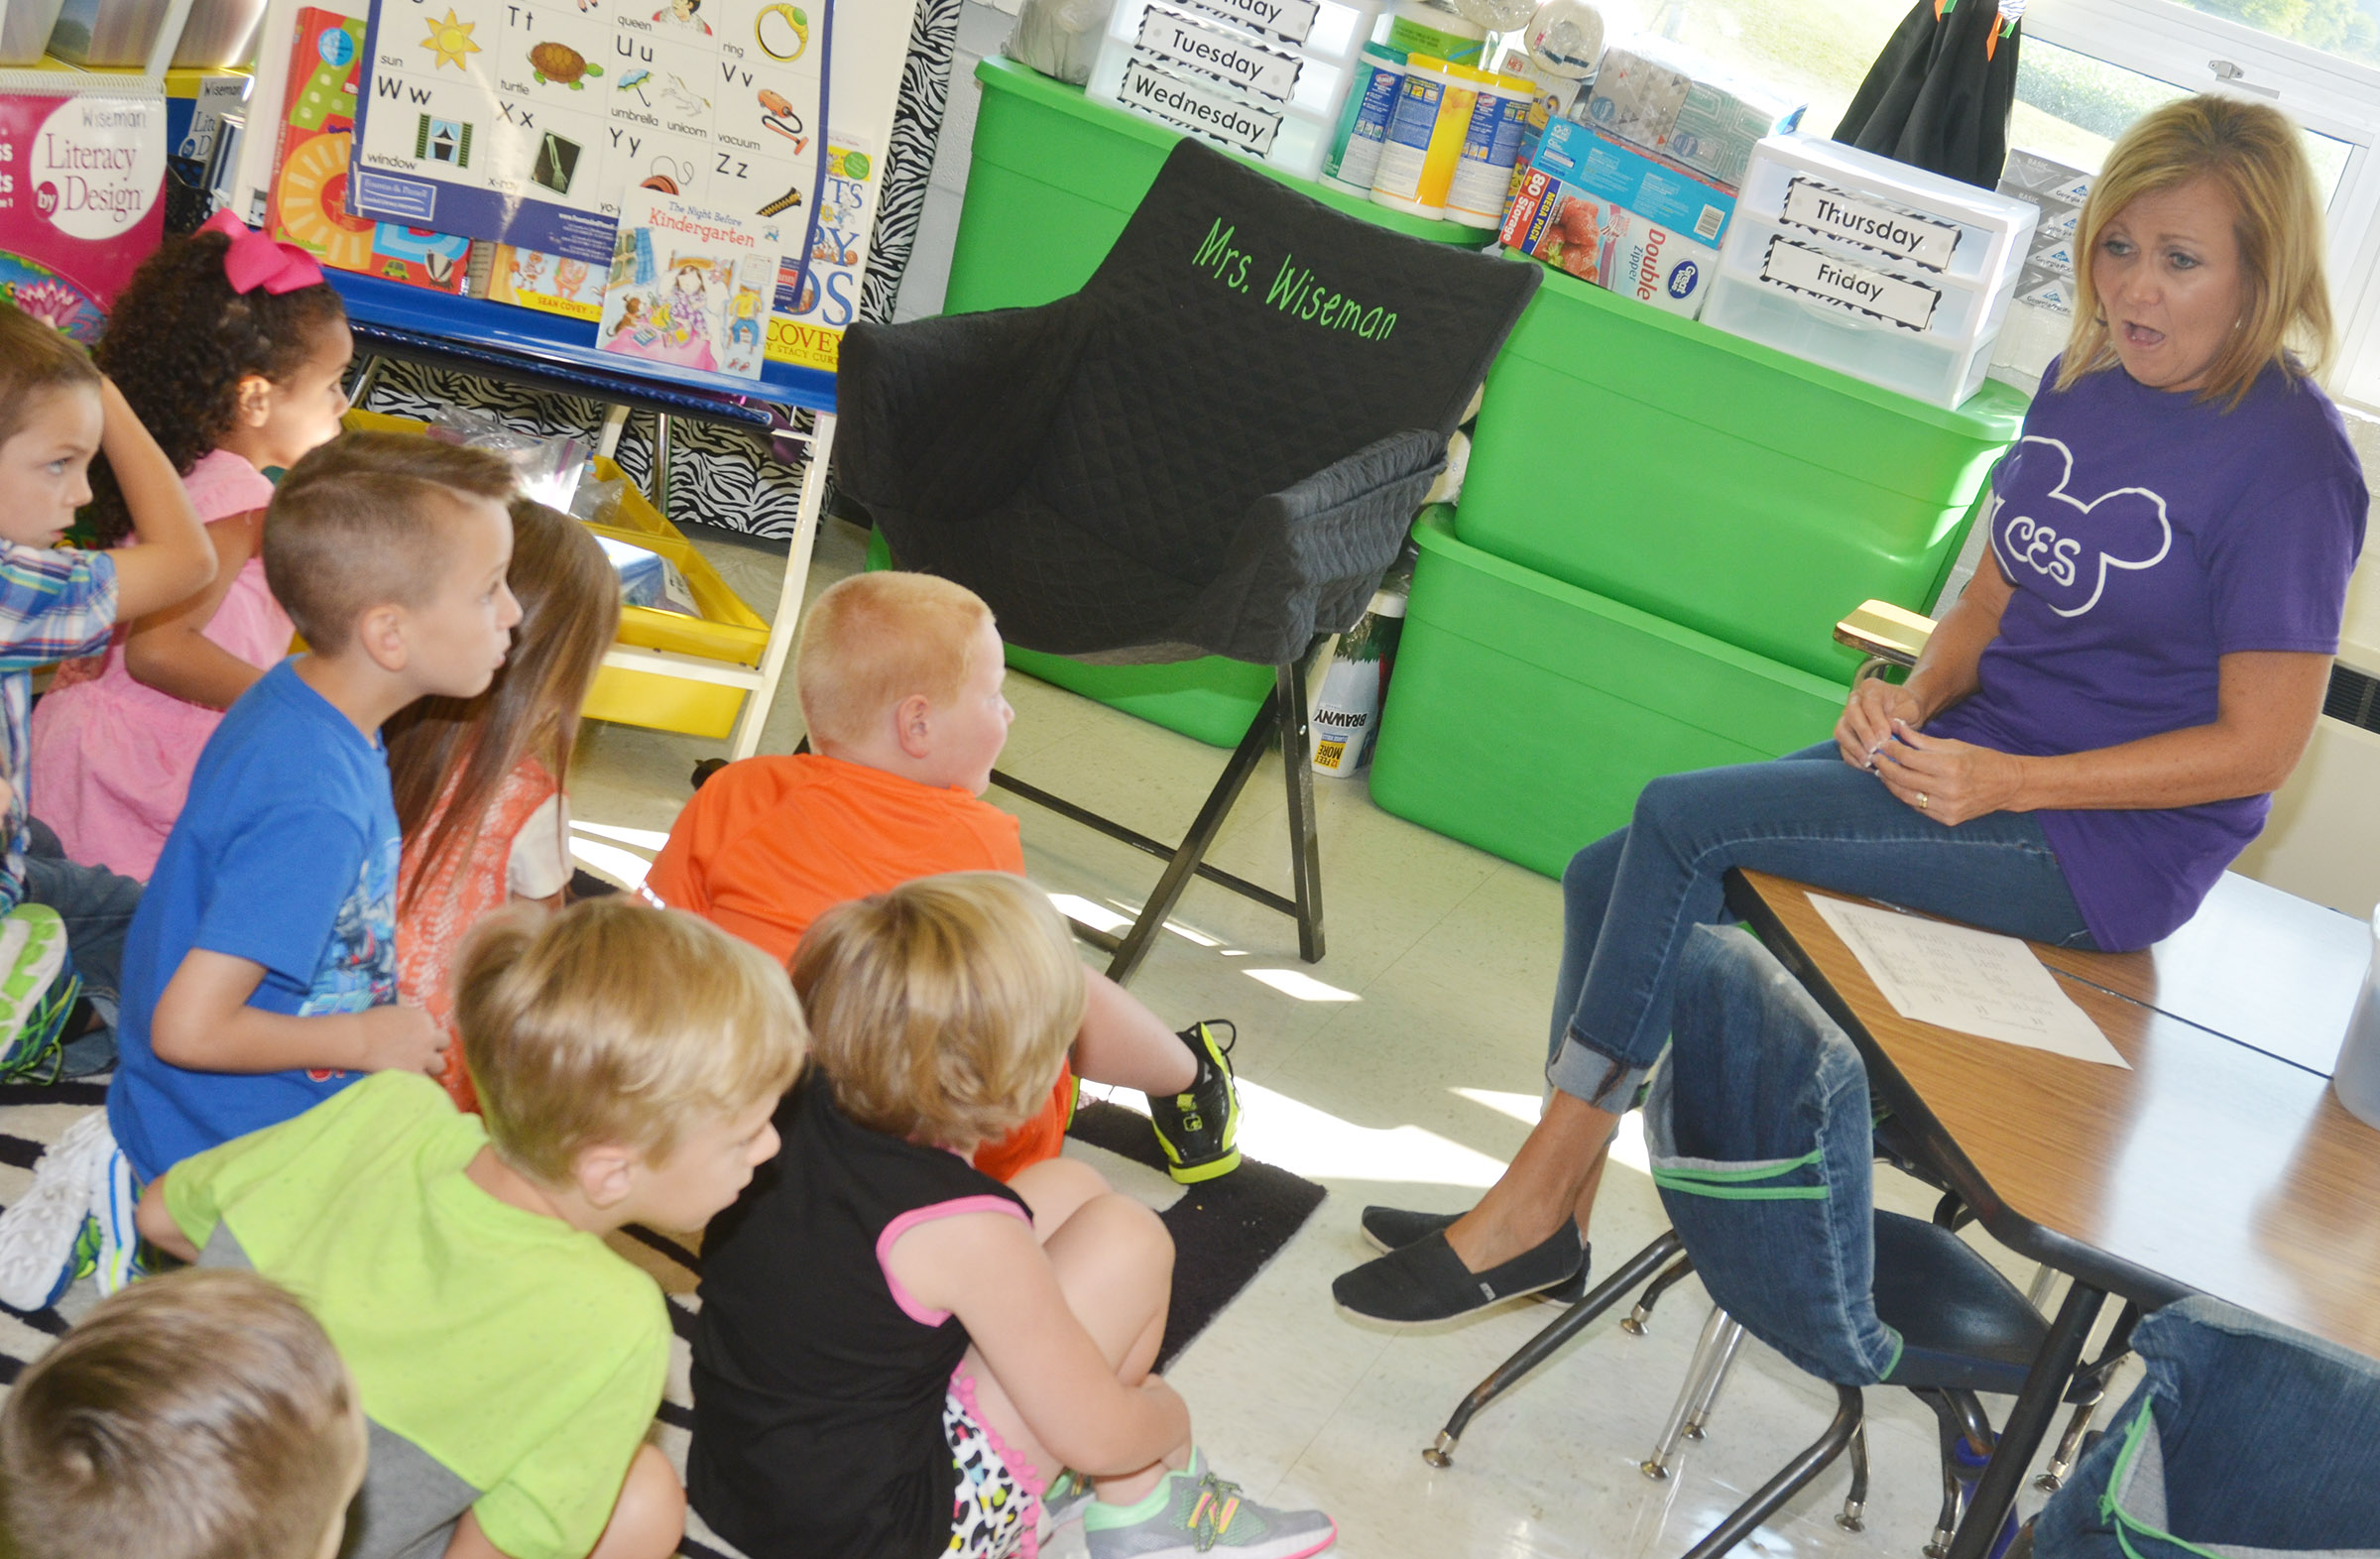 CES kindergarten teacher Lisa Wiseman talks with her students.